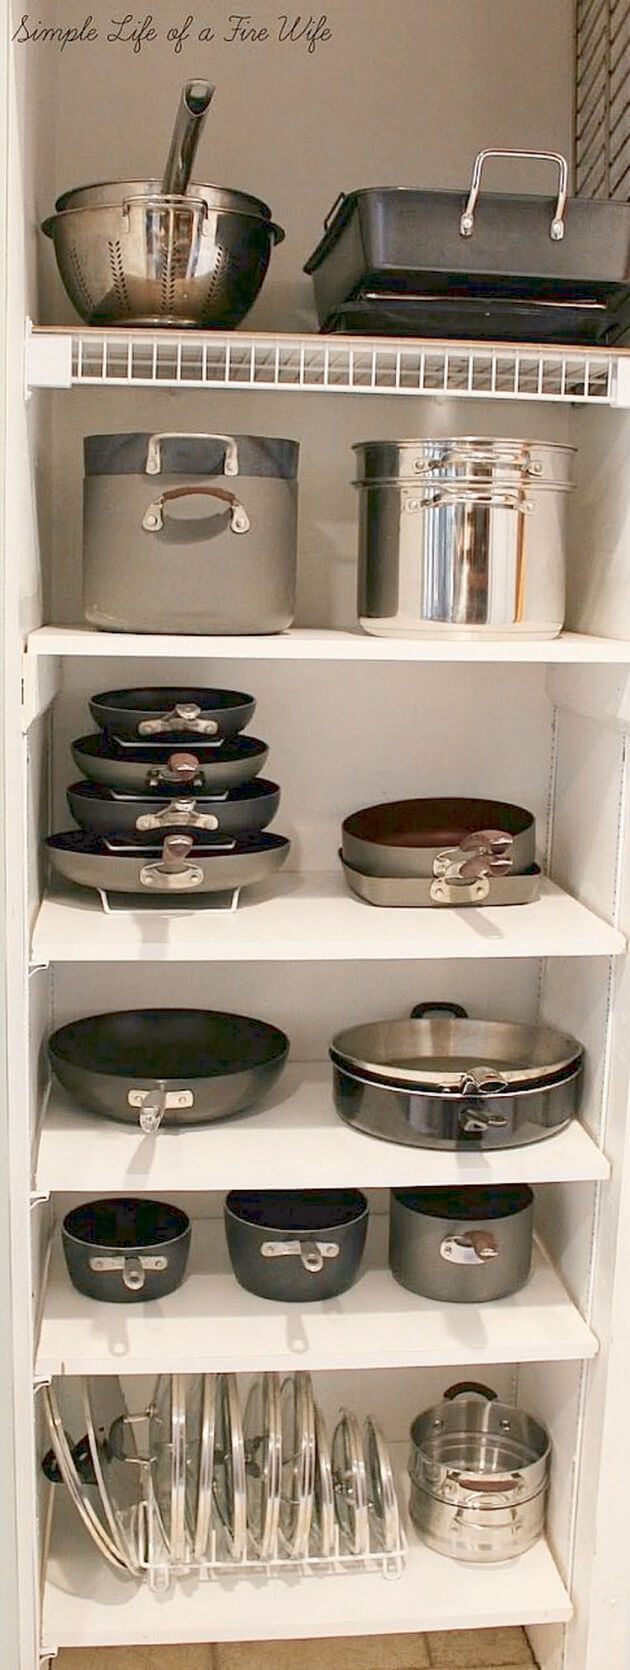 Best 25+ Small kitchen storage ideas on Pinterest | Small kitchen ...